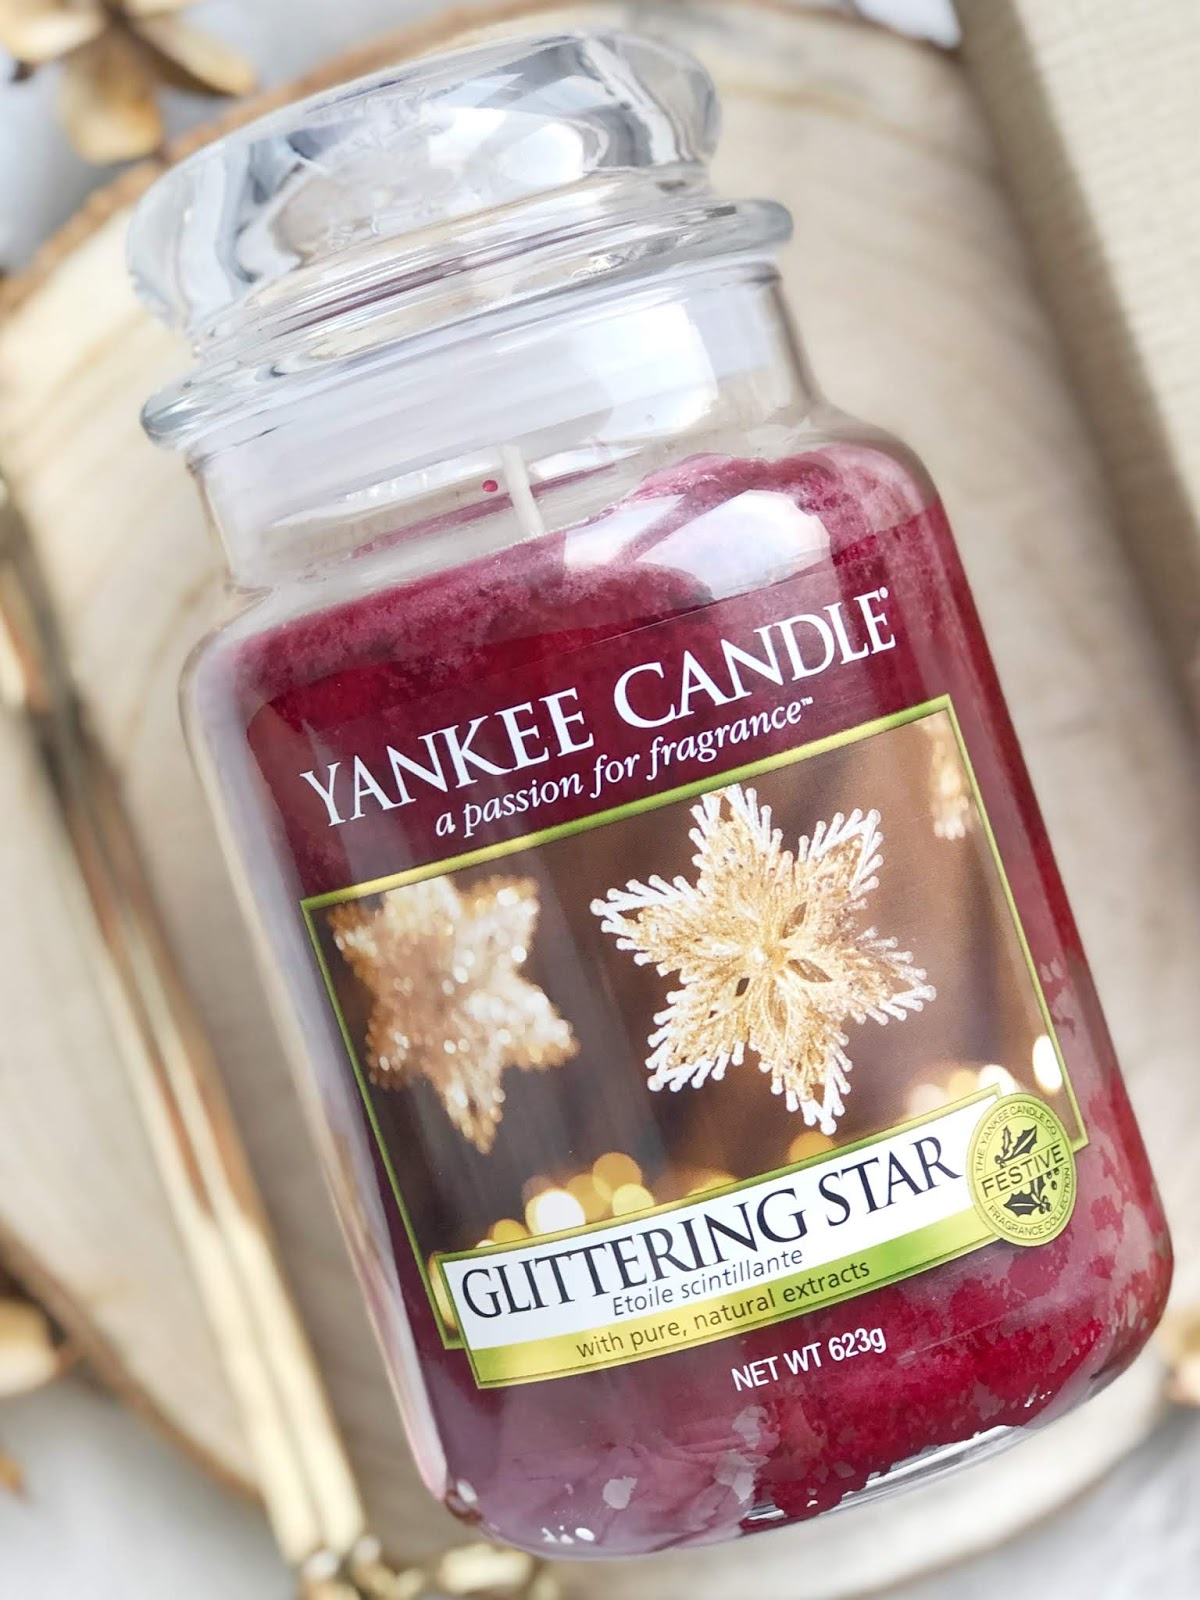 Glittering-Star-Yankee-Candle